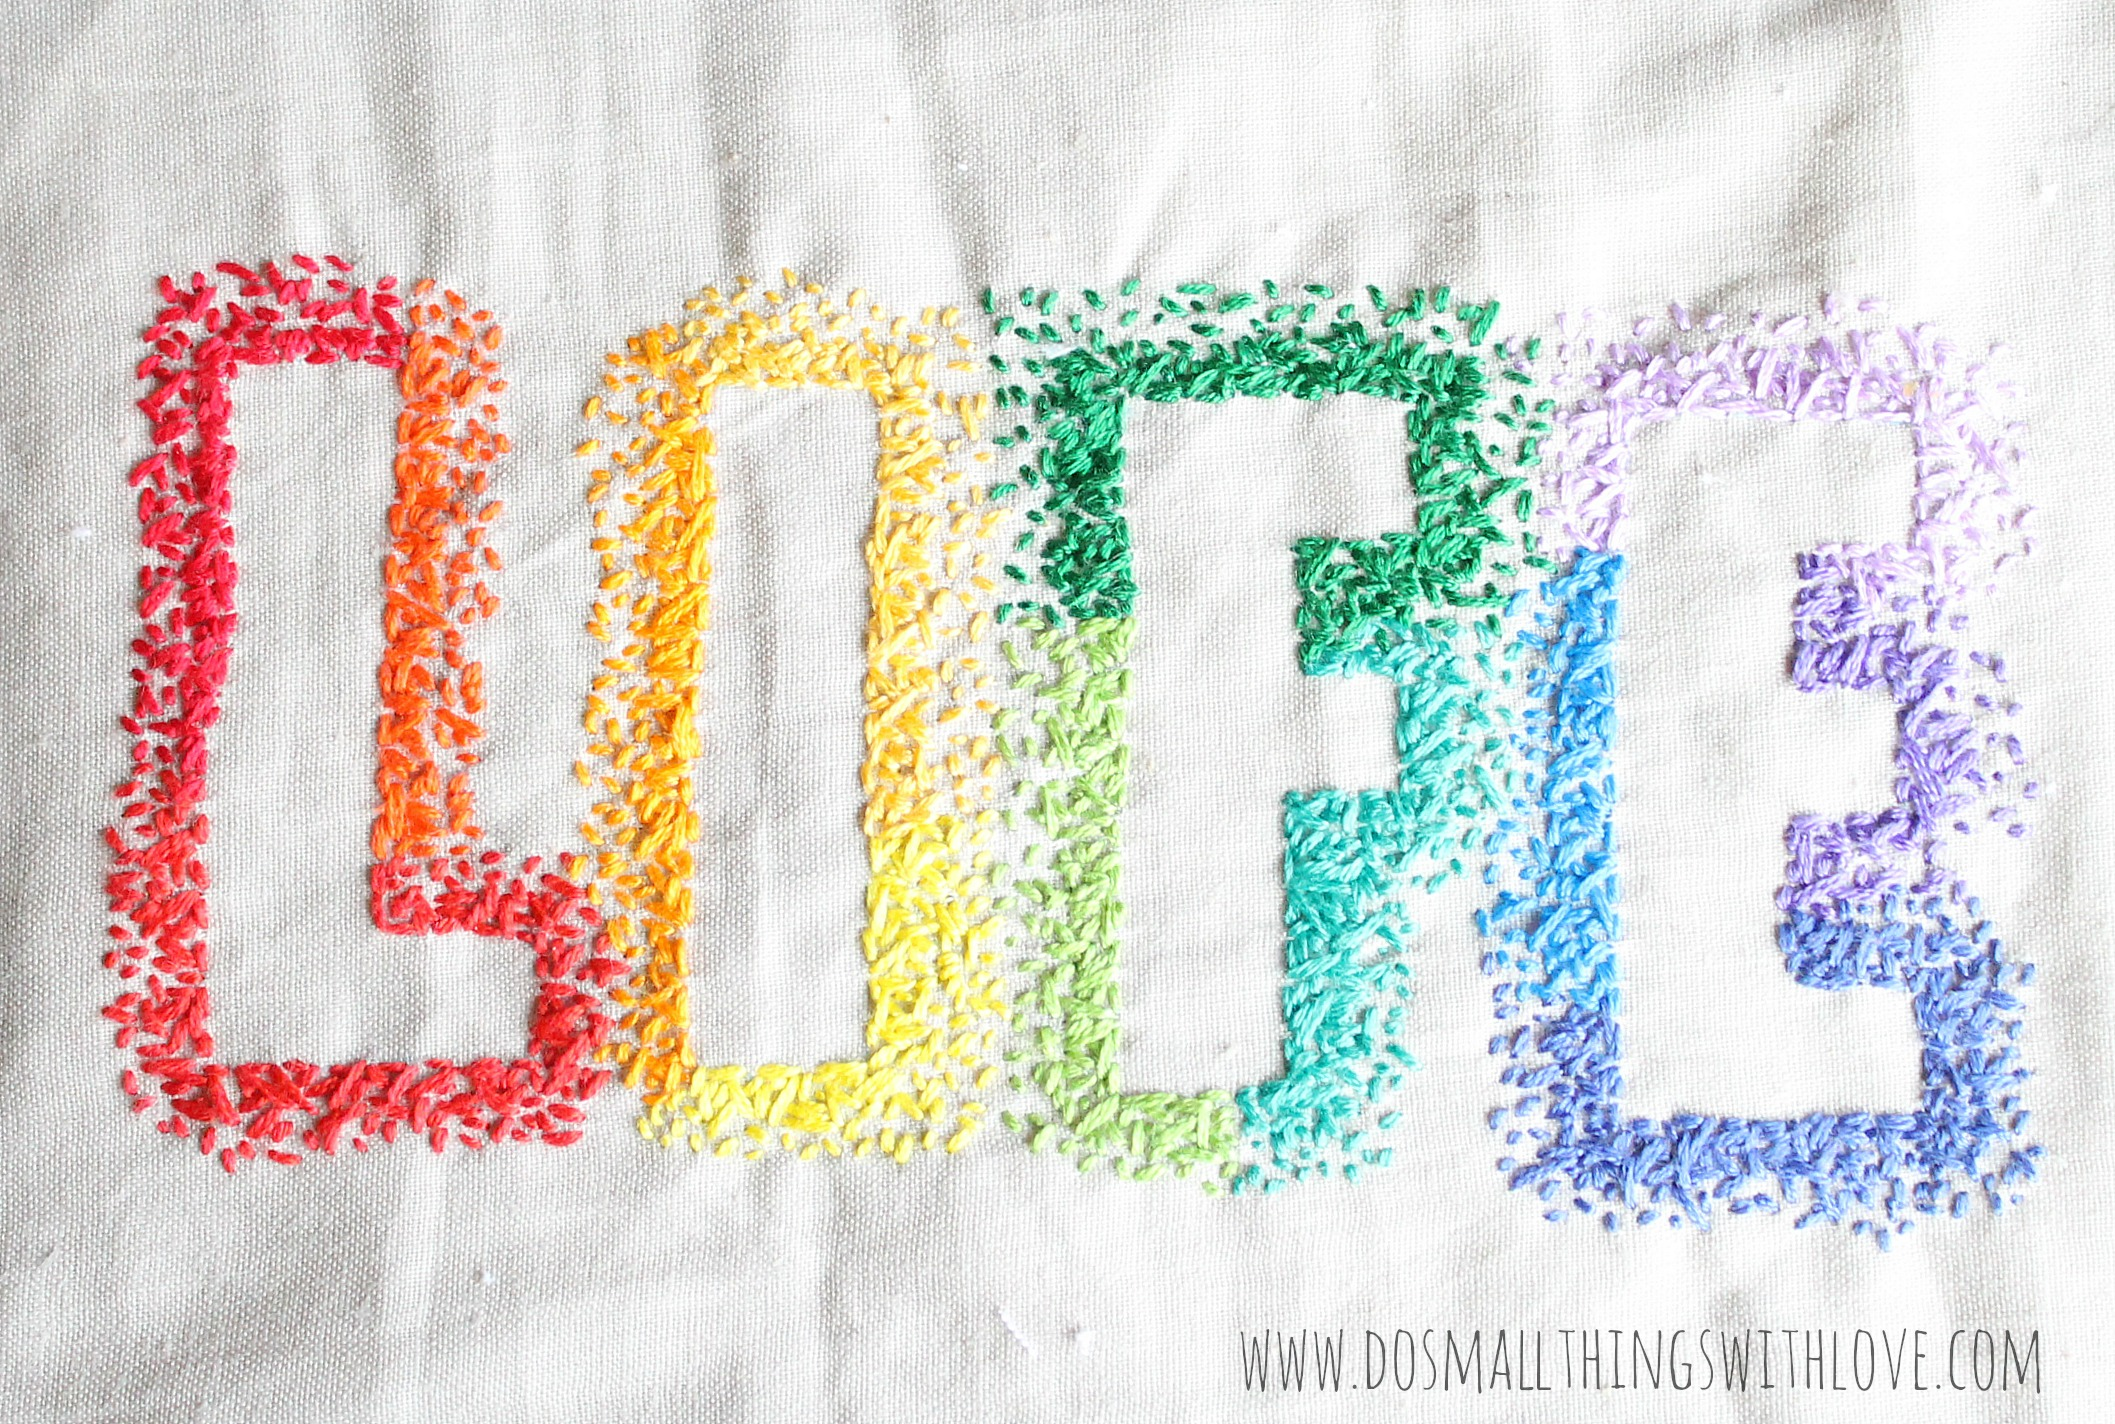 Pro Life Embroidery Confetti Stitch Do Small Things With Great Love